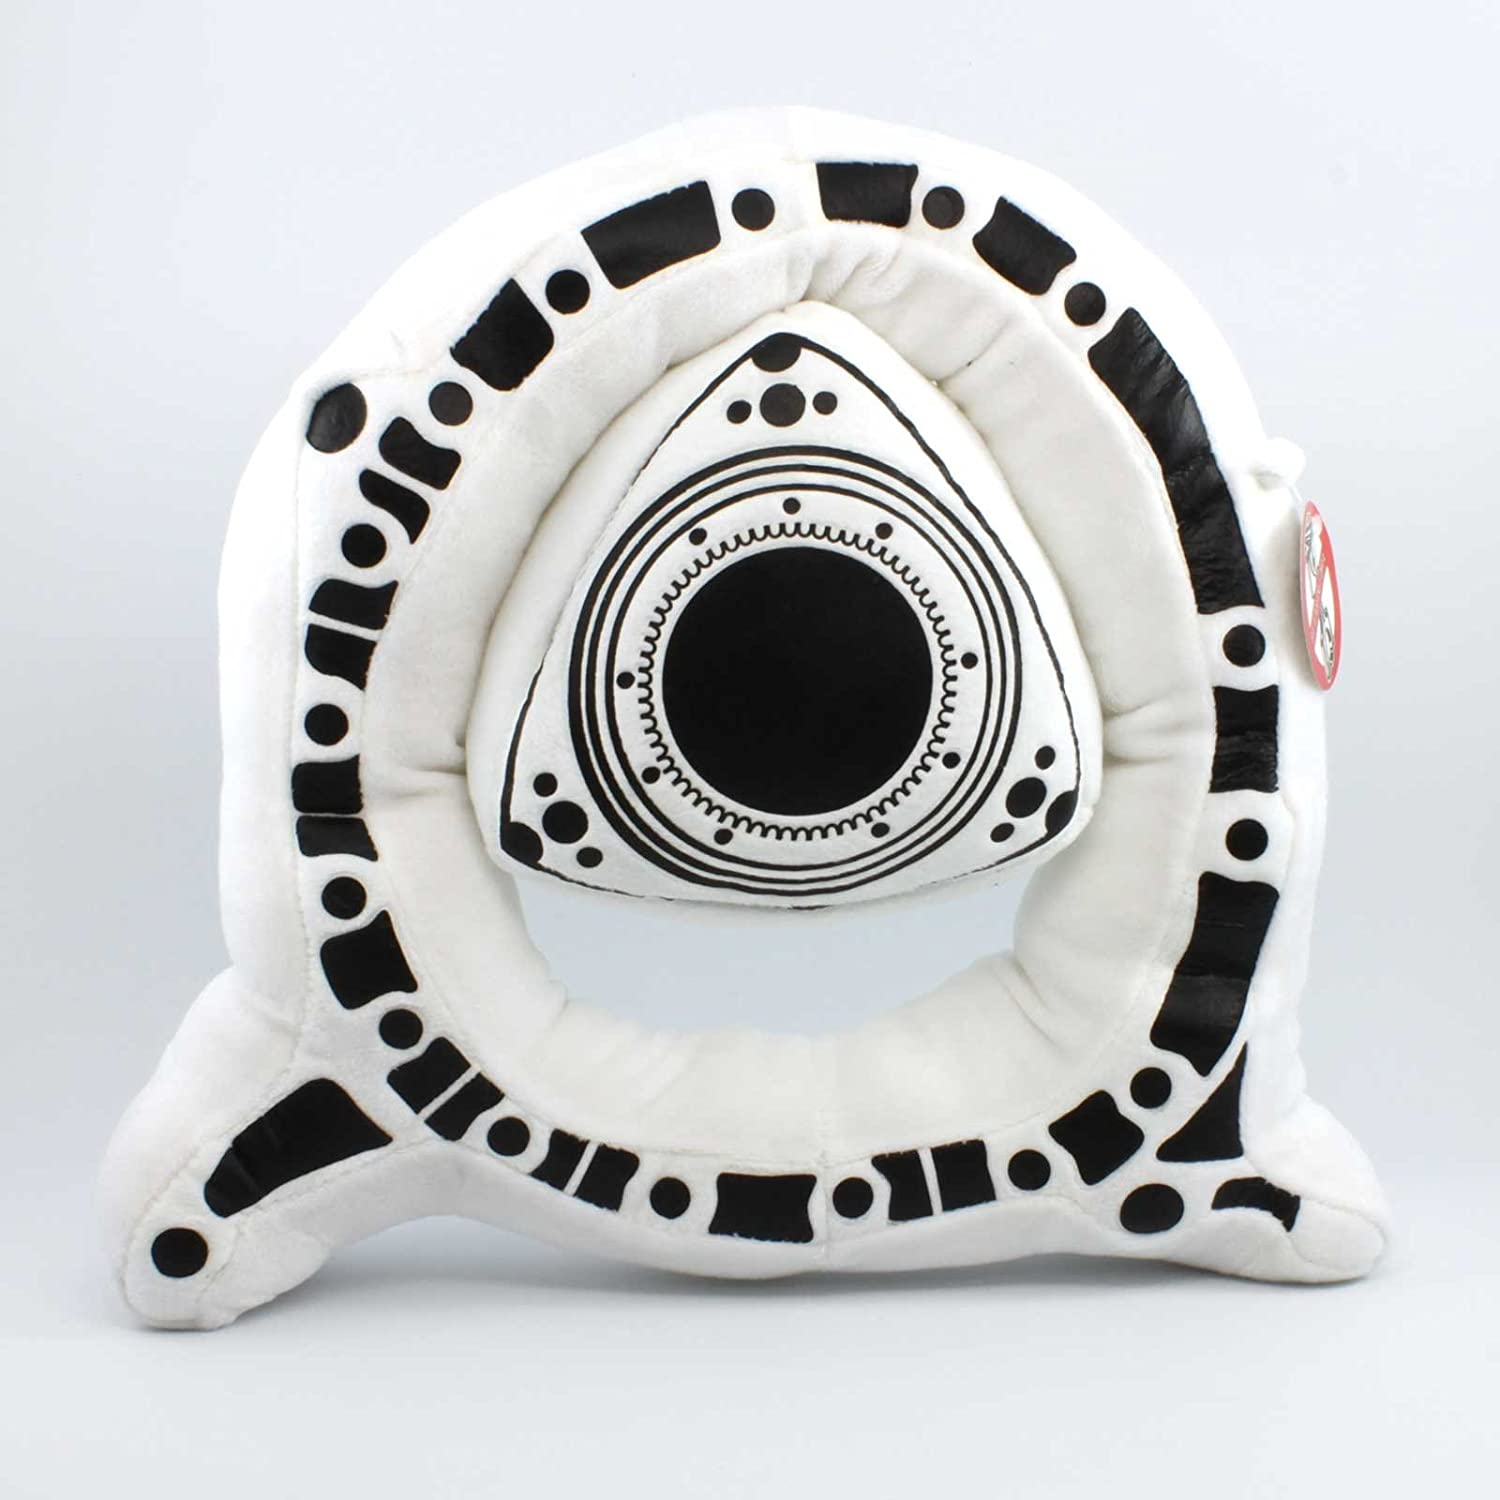 White RX1471 Rotor Housing Plush Toy Rotary13B1